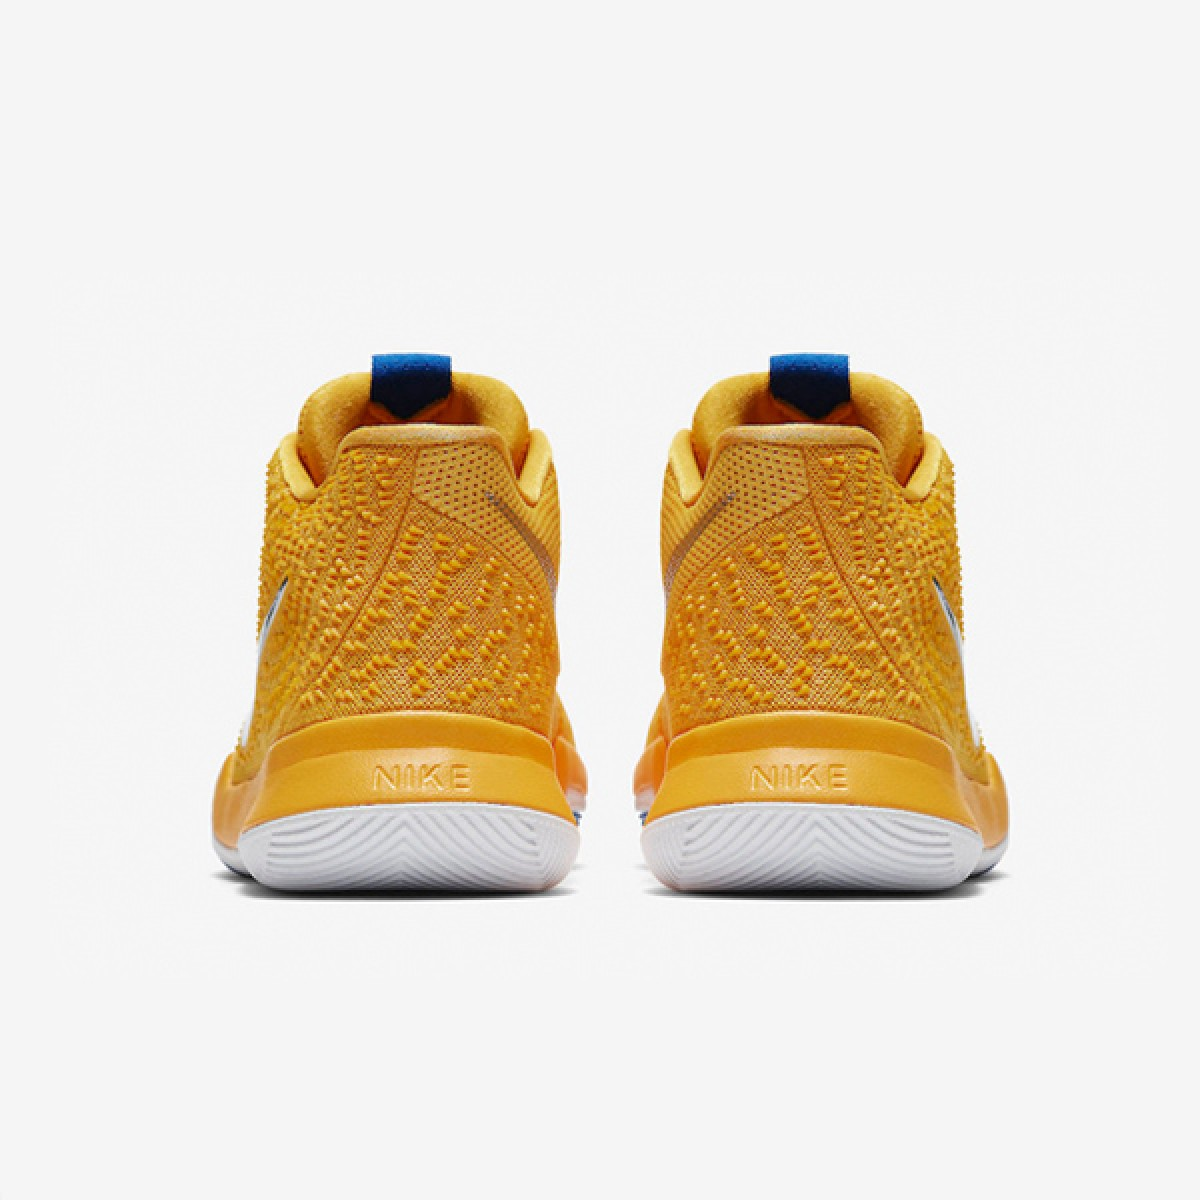 Nike Kyrie 3 GS 'Mac and Cheese' 859466-791